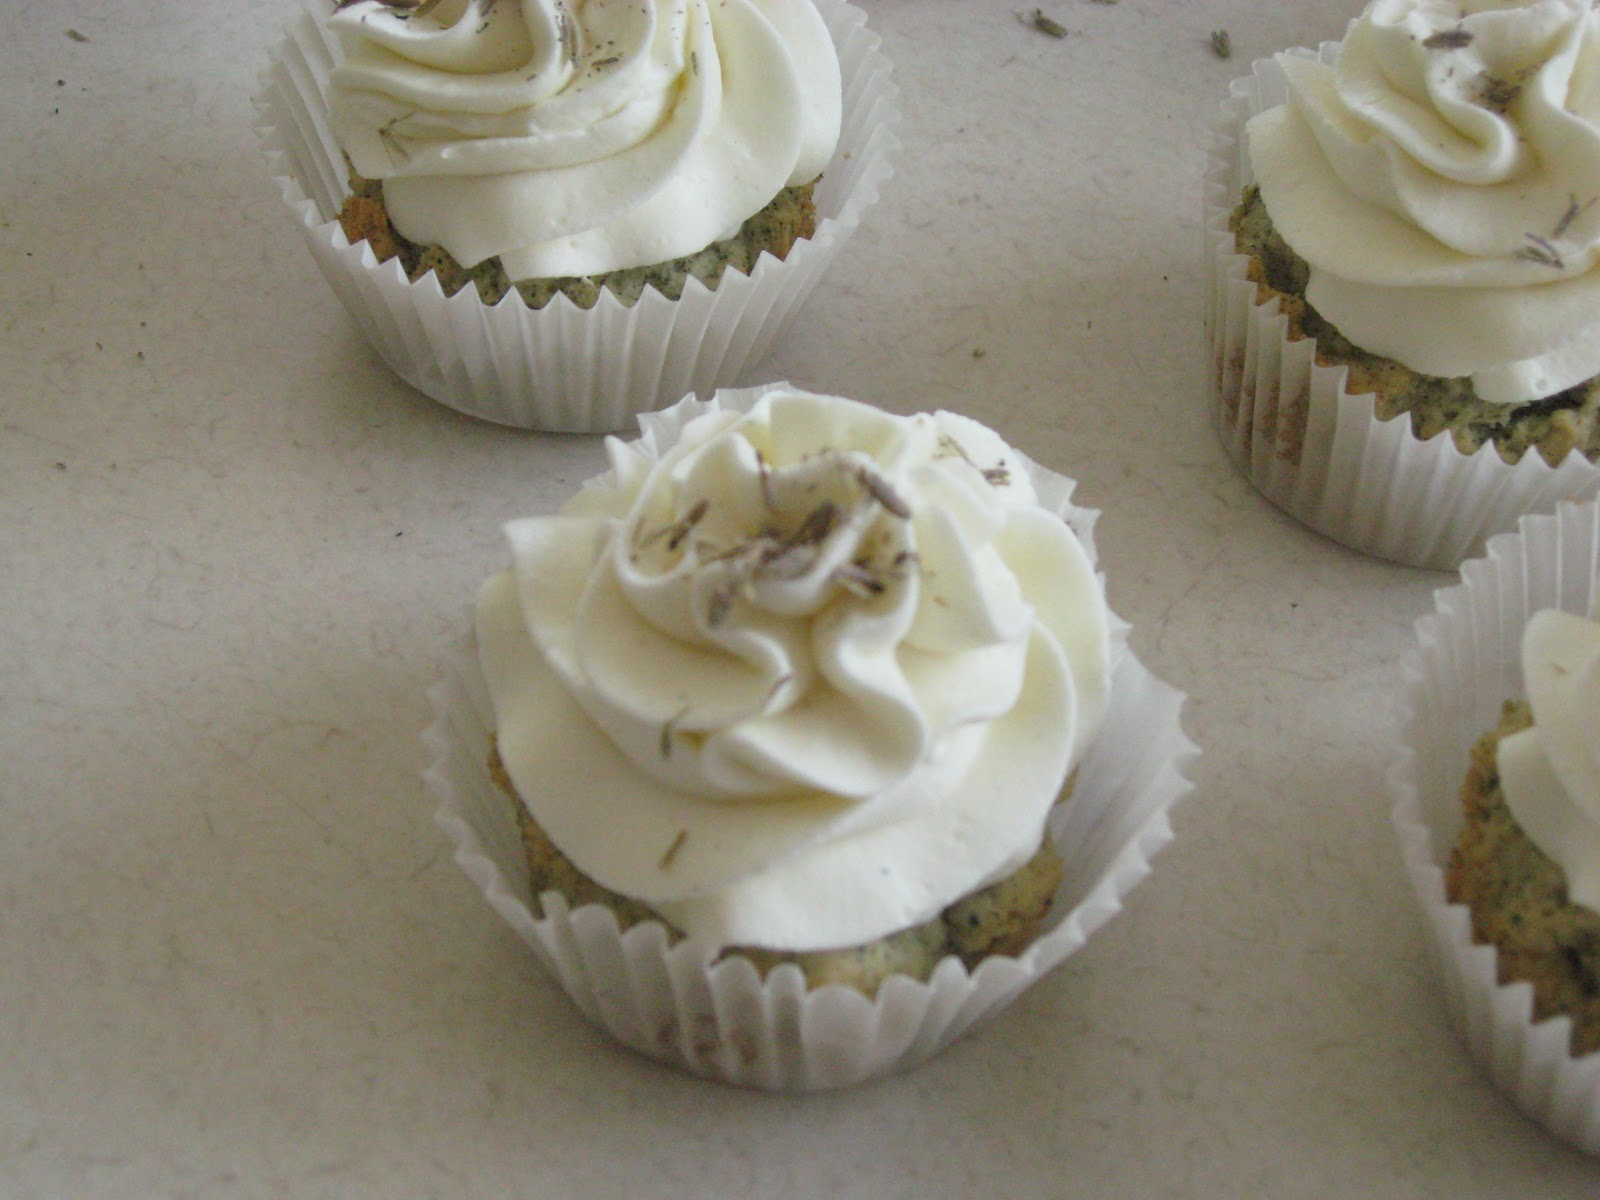 ... and More: Earl Grey Cupcakes With Lavender Marscarpone Frosting